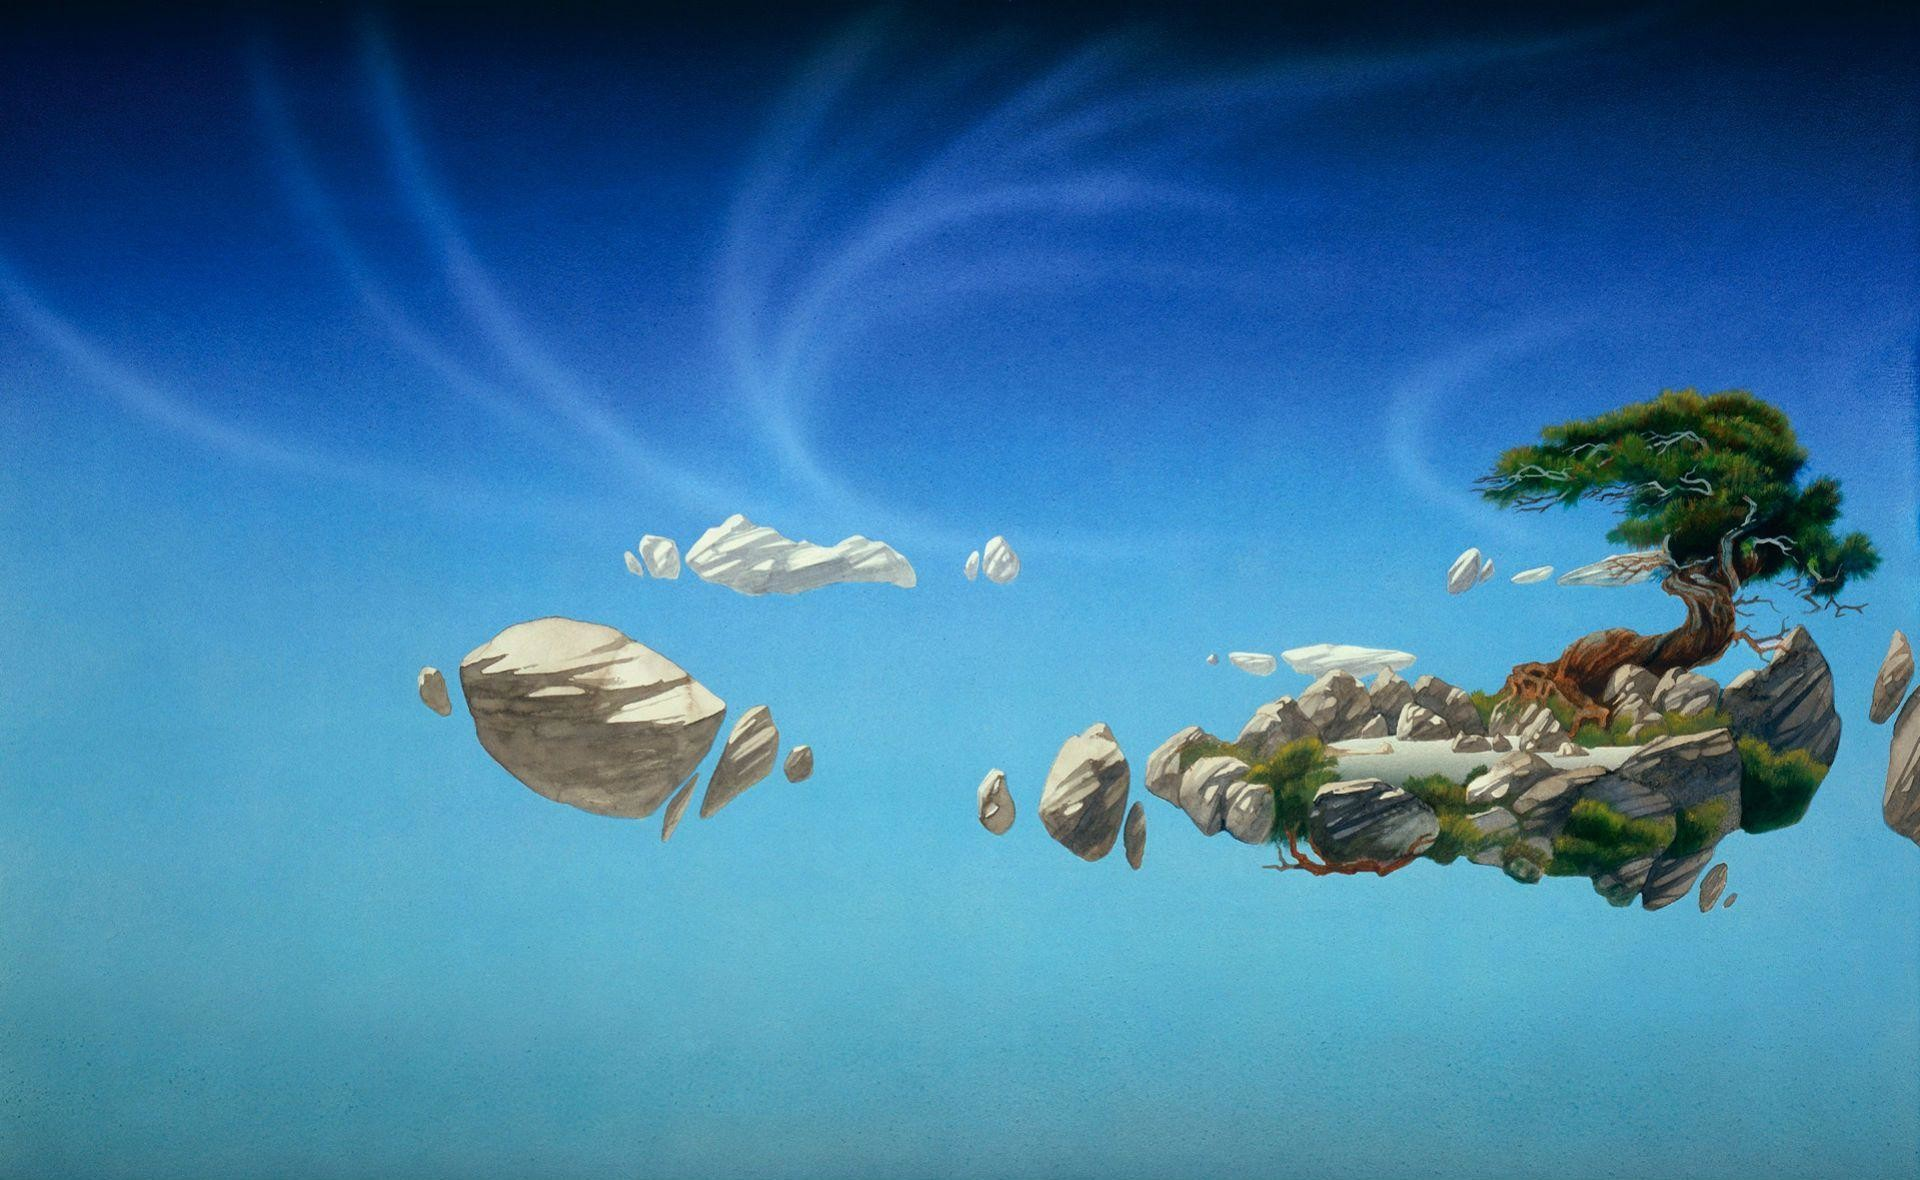 1920x1180 Wallpapers by Roger Dean